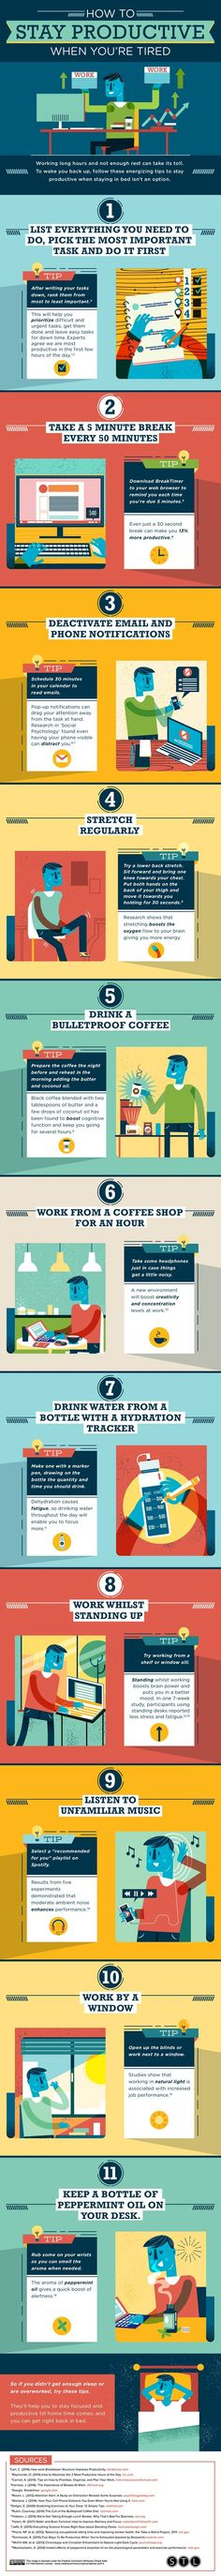 11 Tips to Stay Productive When You're Tired (Infographic)